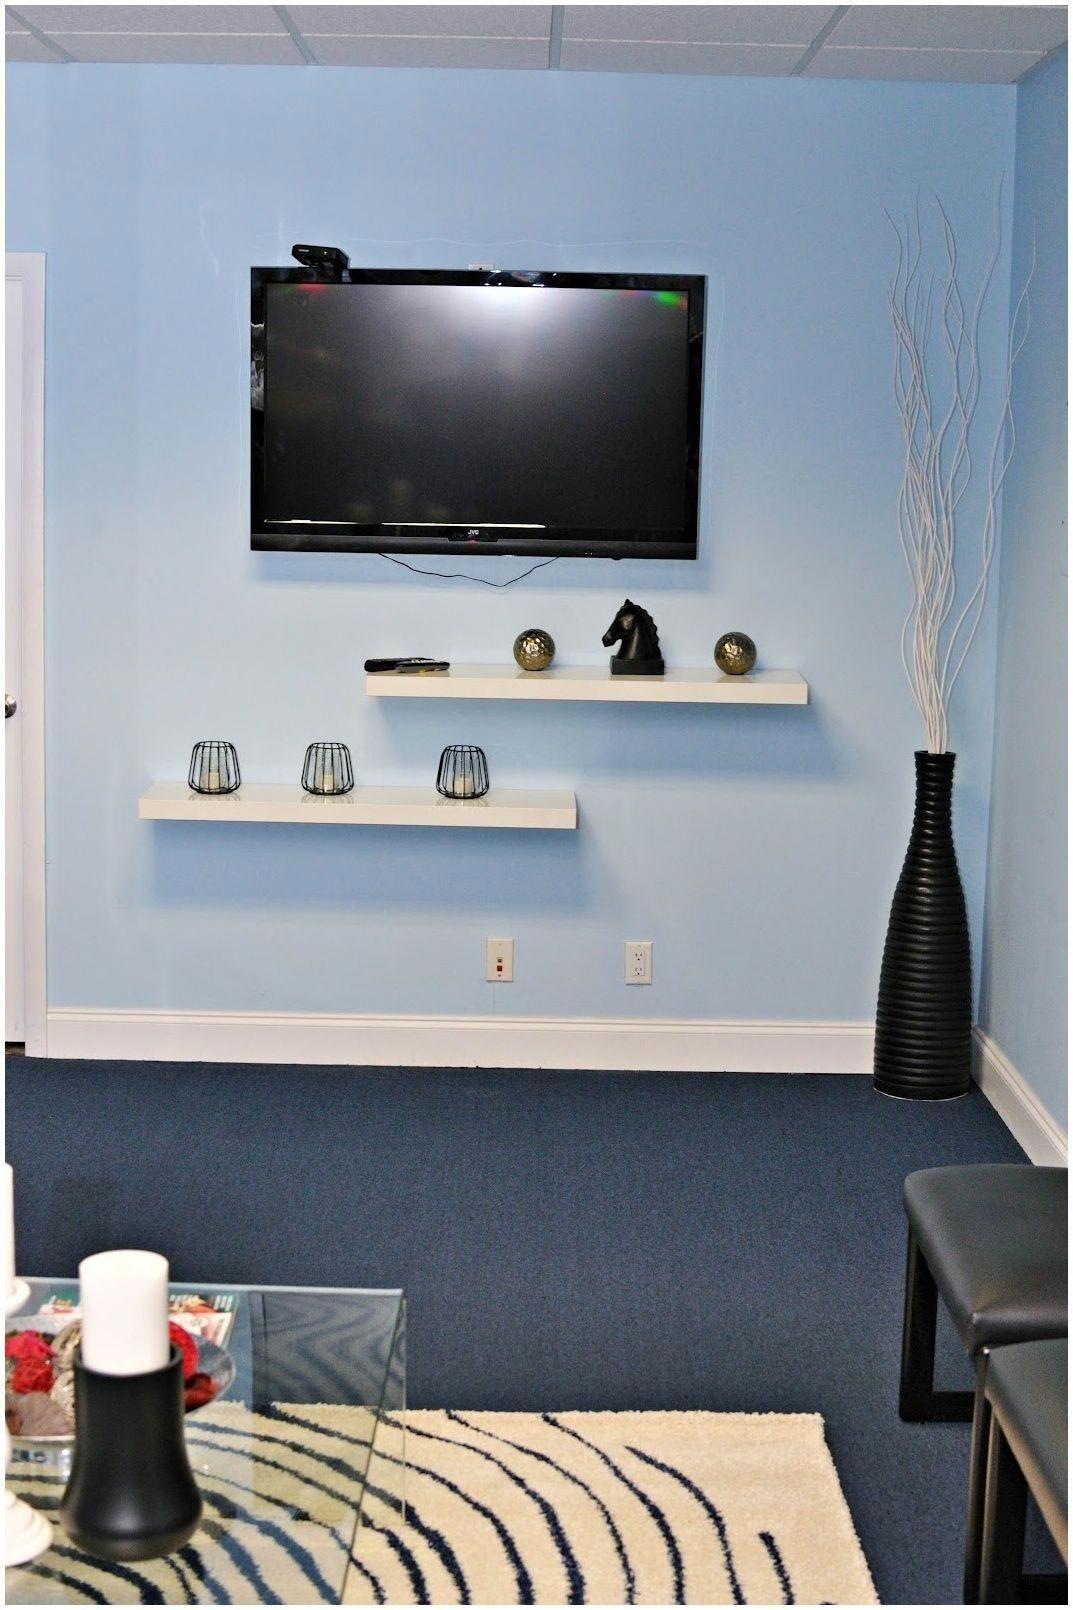 Wall Mounted Tv Shelf For Cable Box Tvbracketdiy Floating Shelf